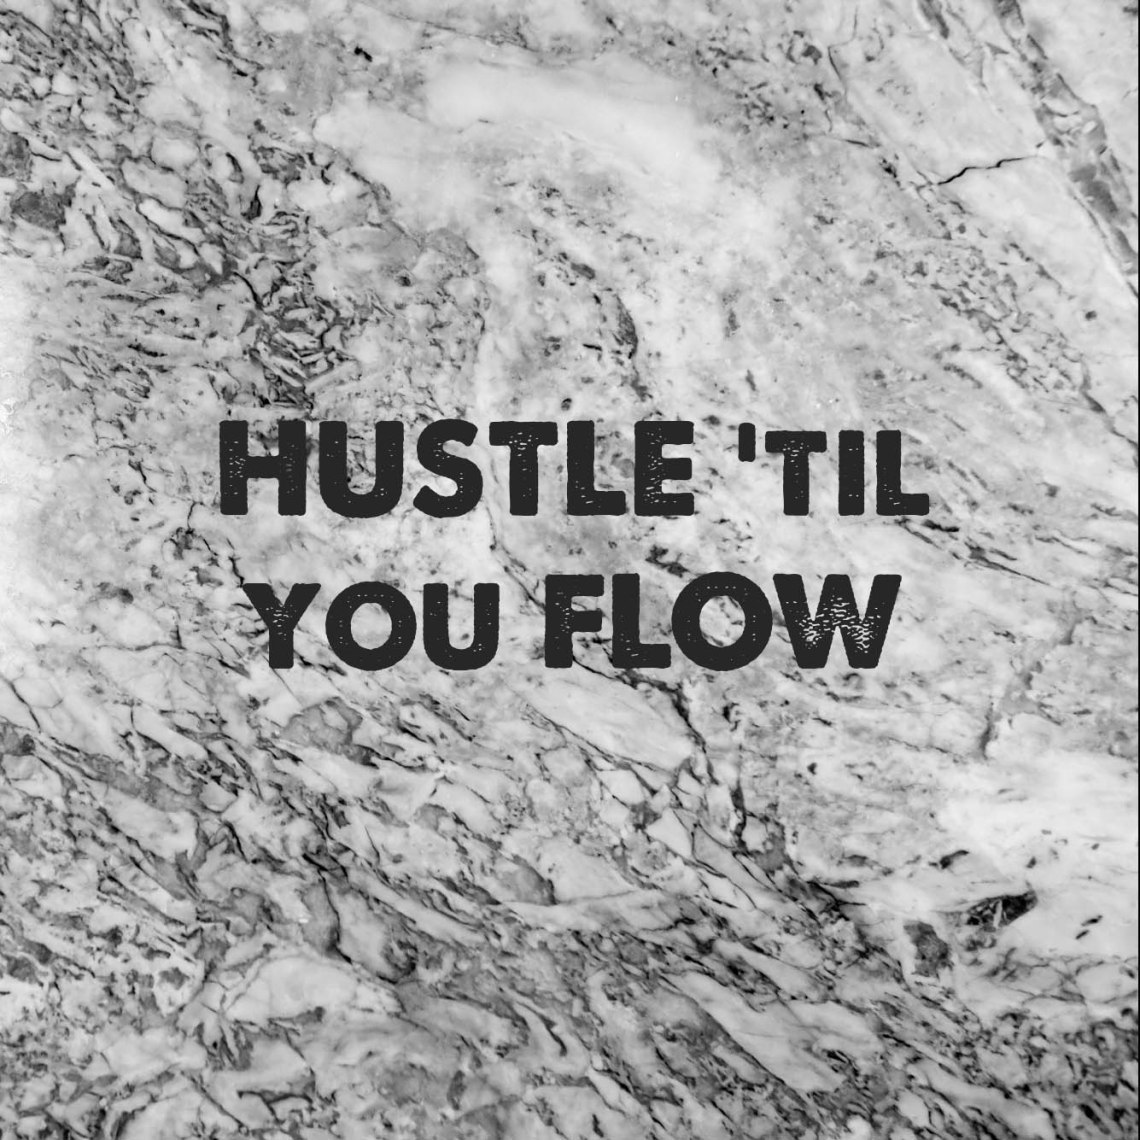 hustleflowmotivation.jpg